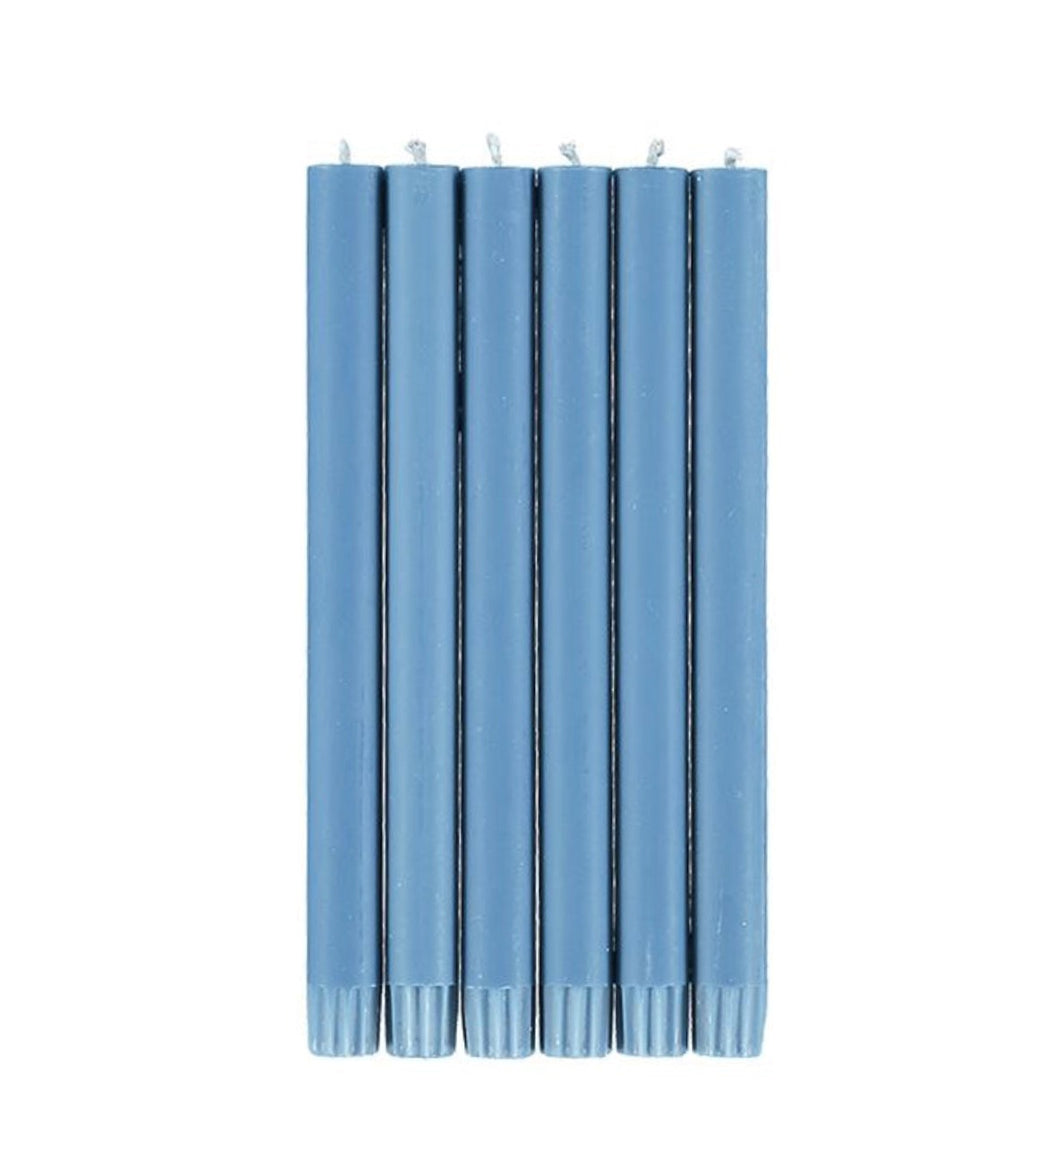 Blue Eco Plain Candles Pack Of 6